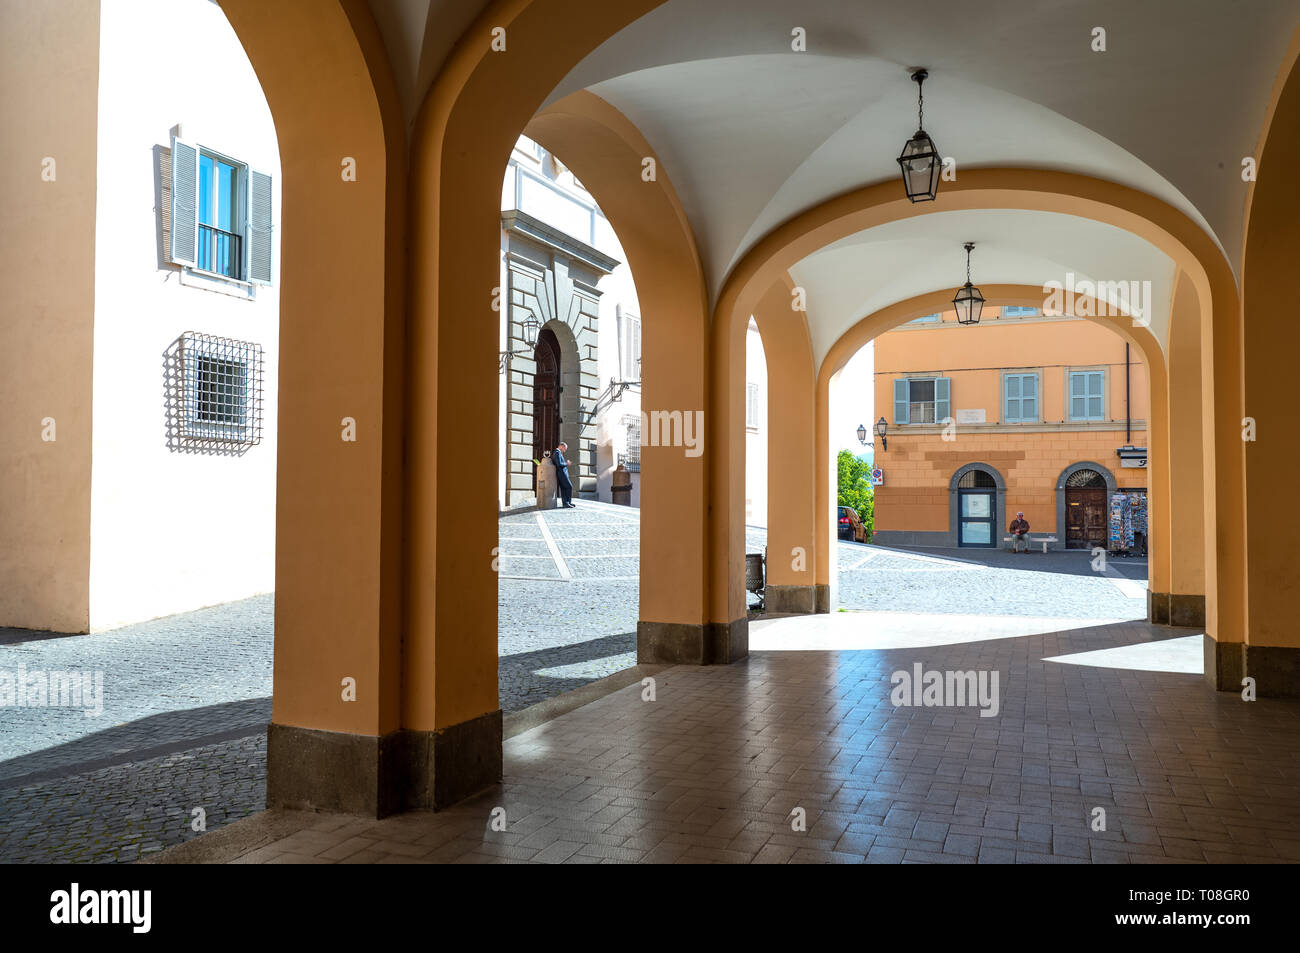 Italy, Castelgandolfo, The arcade  in front of the Apostolic palace, summer residence of the Popes - Stock Image